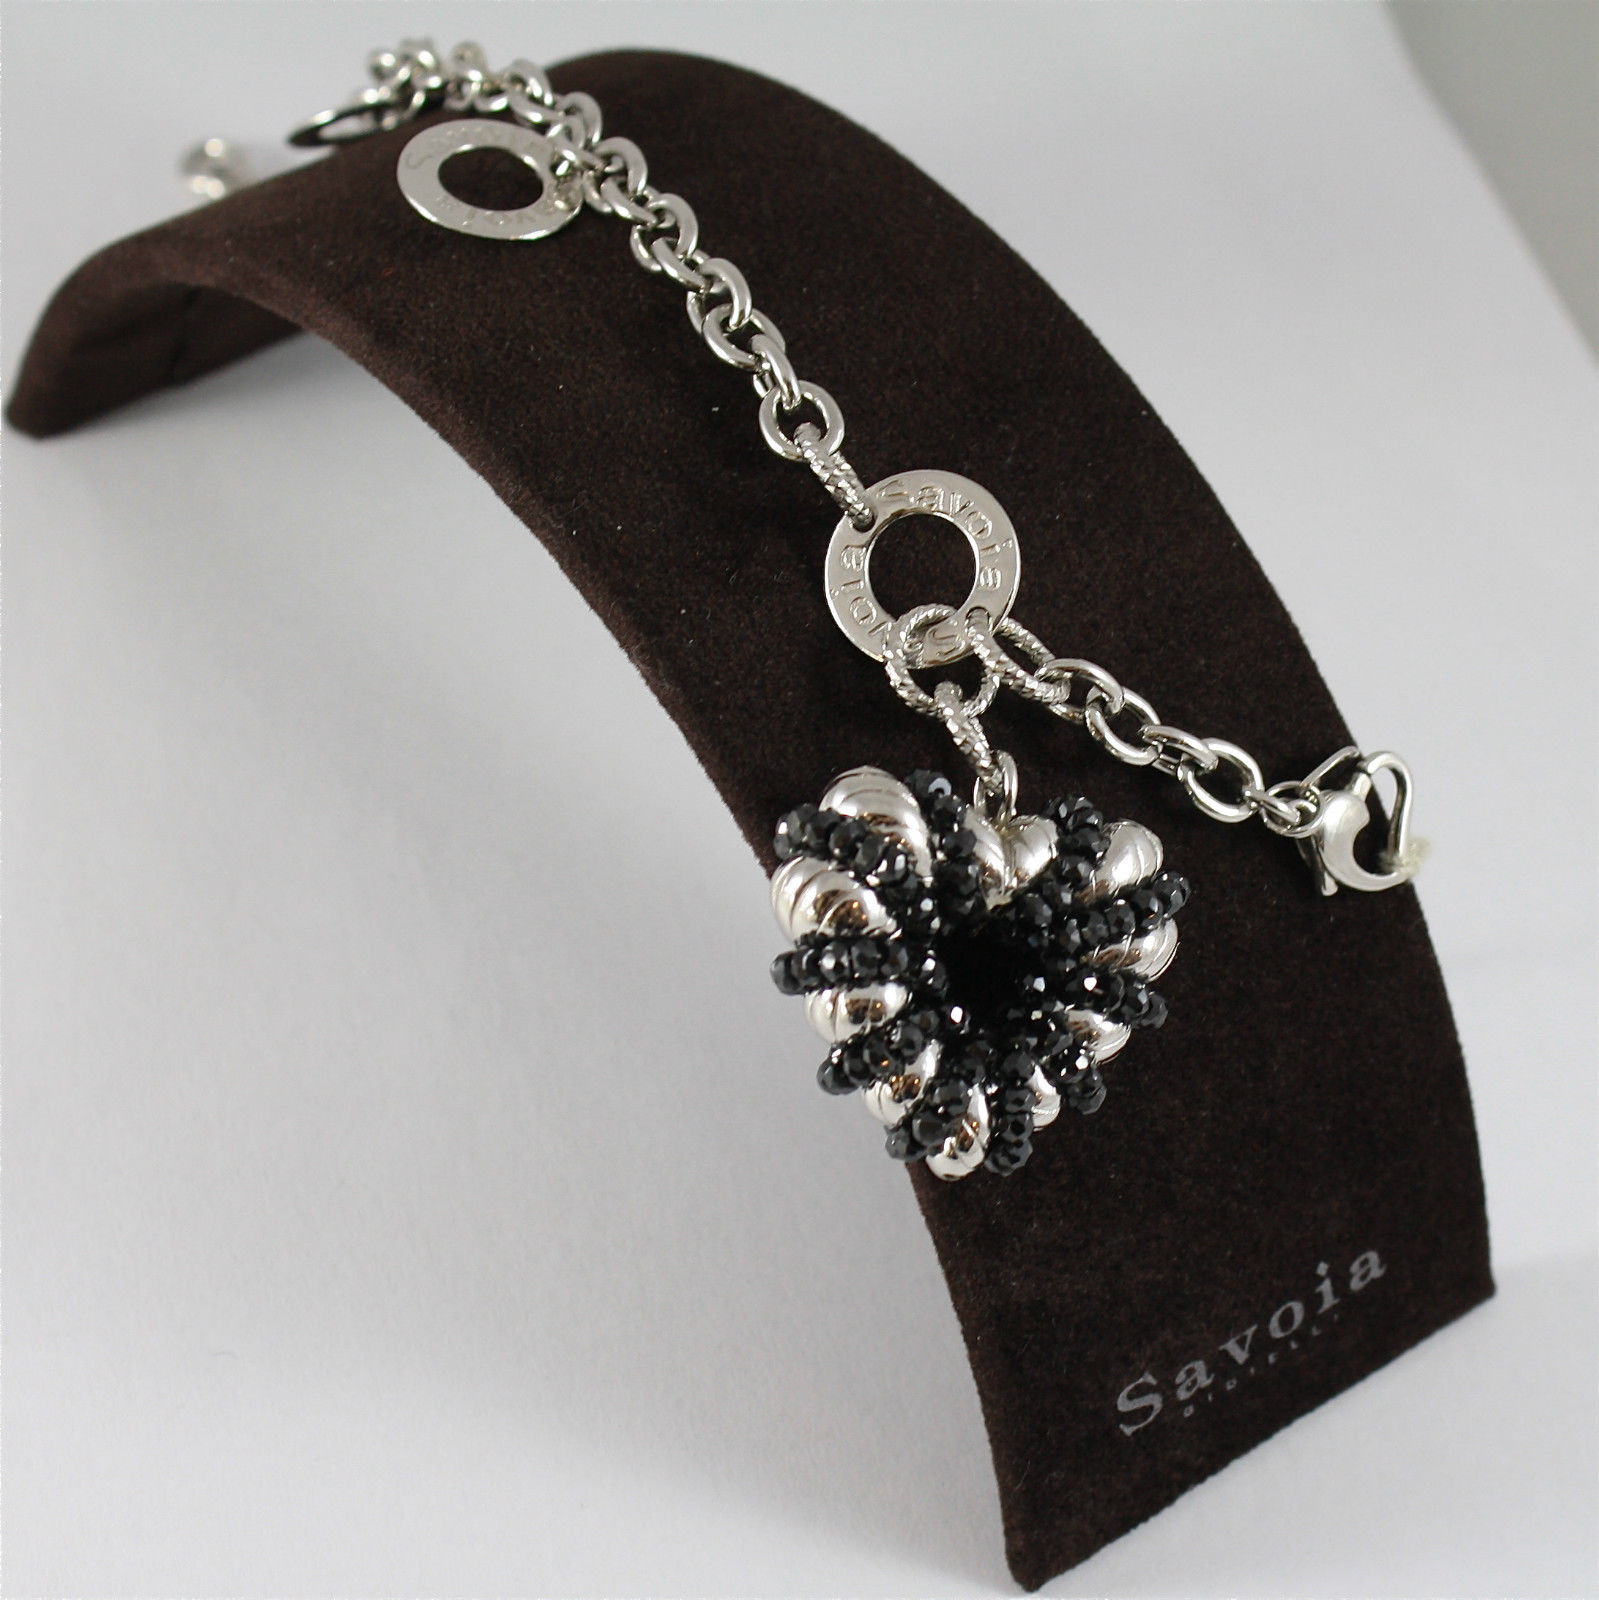 925 RODIUM SILVER BRACELET, SPINEL, HEART CHARM, MADE IN ITALY BY SAVOIA JEWELS